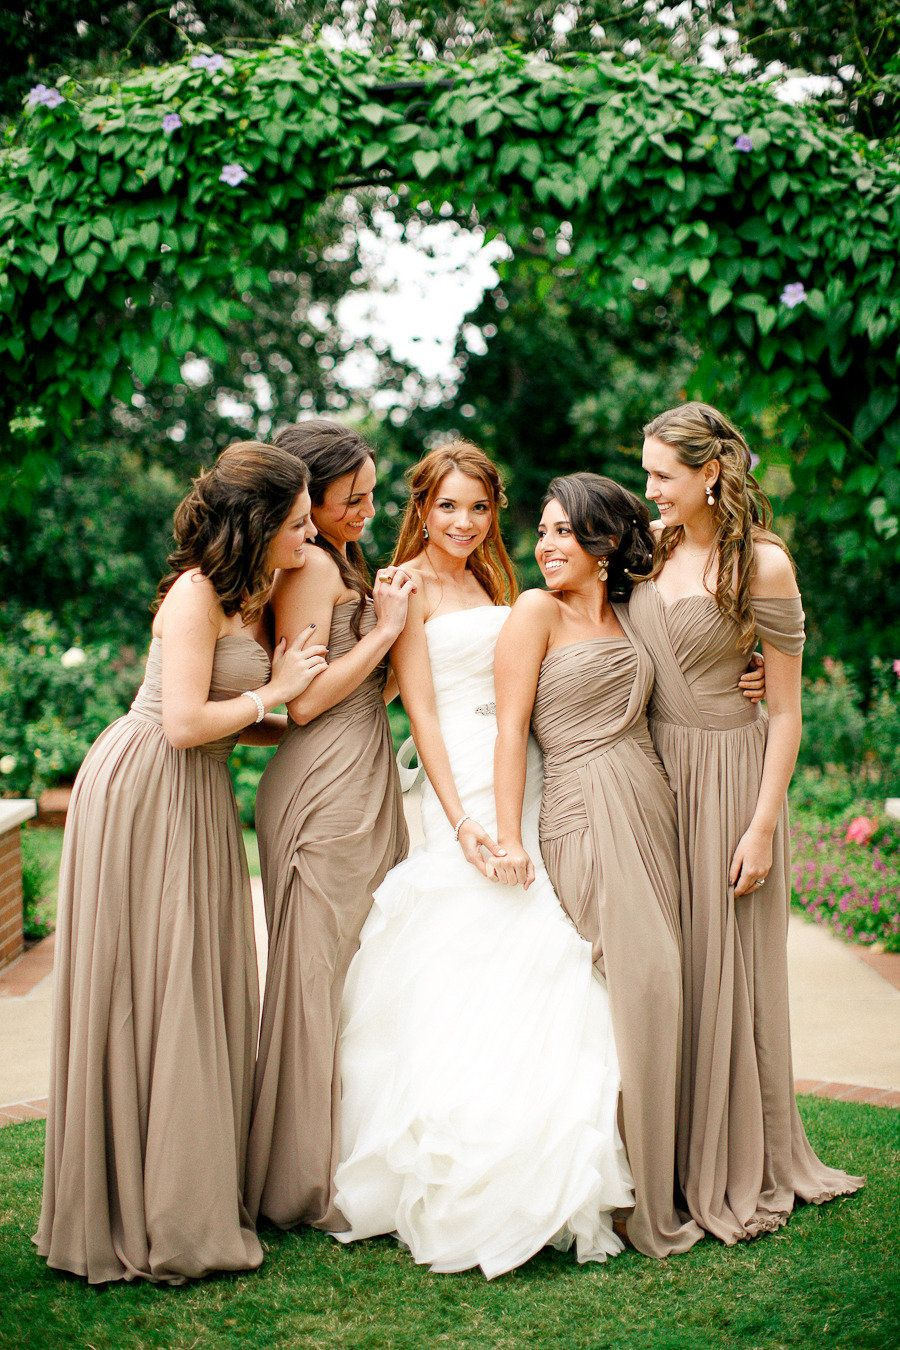 Dallas arboretum wedding from apryl ann photography toasted like the colors dallas arboretum wedding from apryl ann photography taupe bridesmaids ombrellifo Choice Image